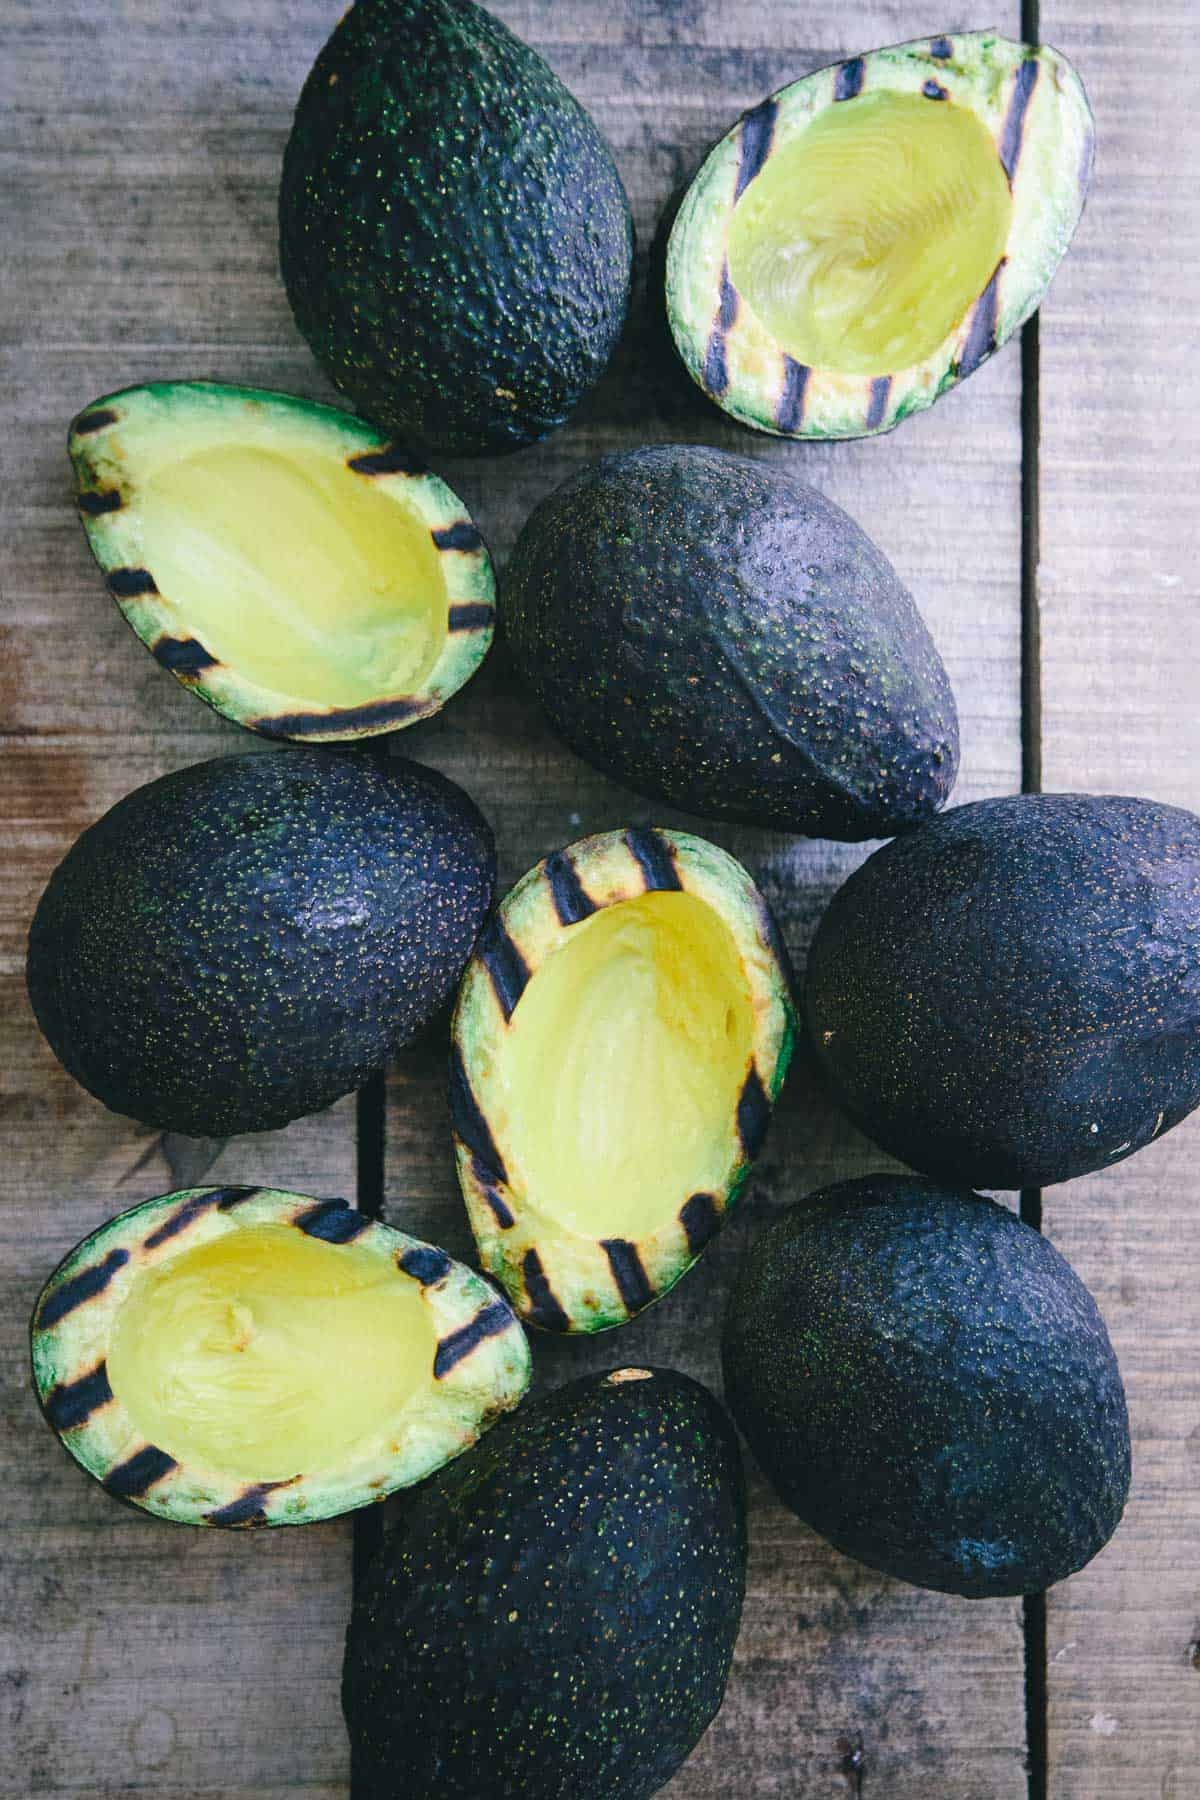 These grilled avocados are stuffed with Asian marinated steak for an easy, healthy and delicious summer meal.